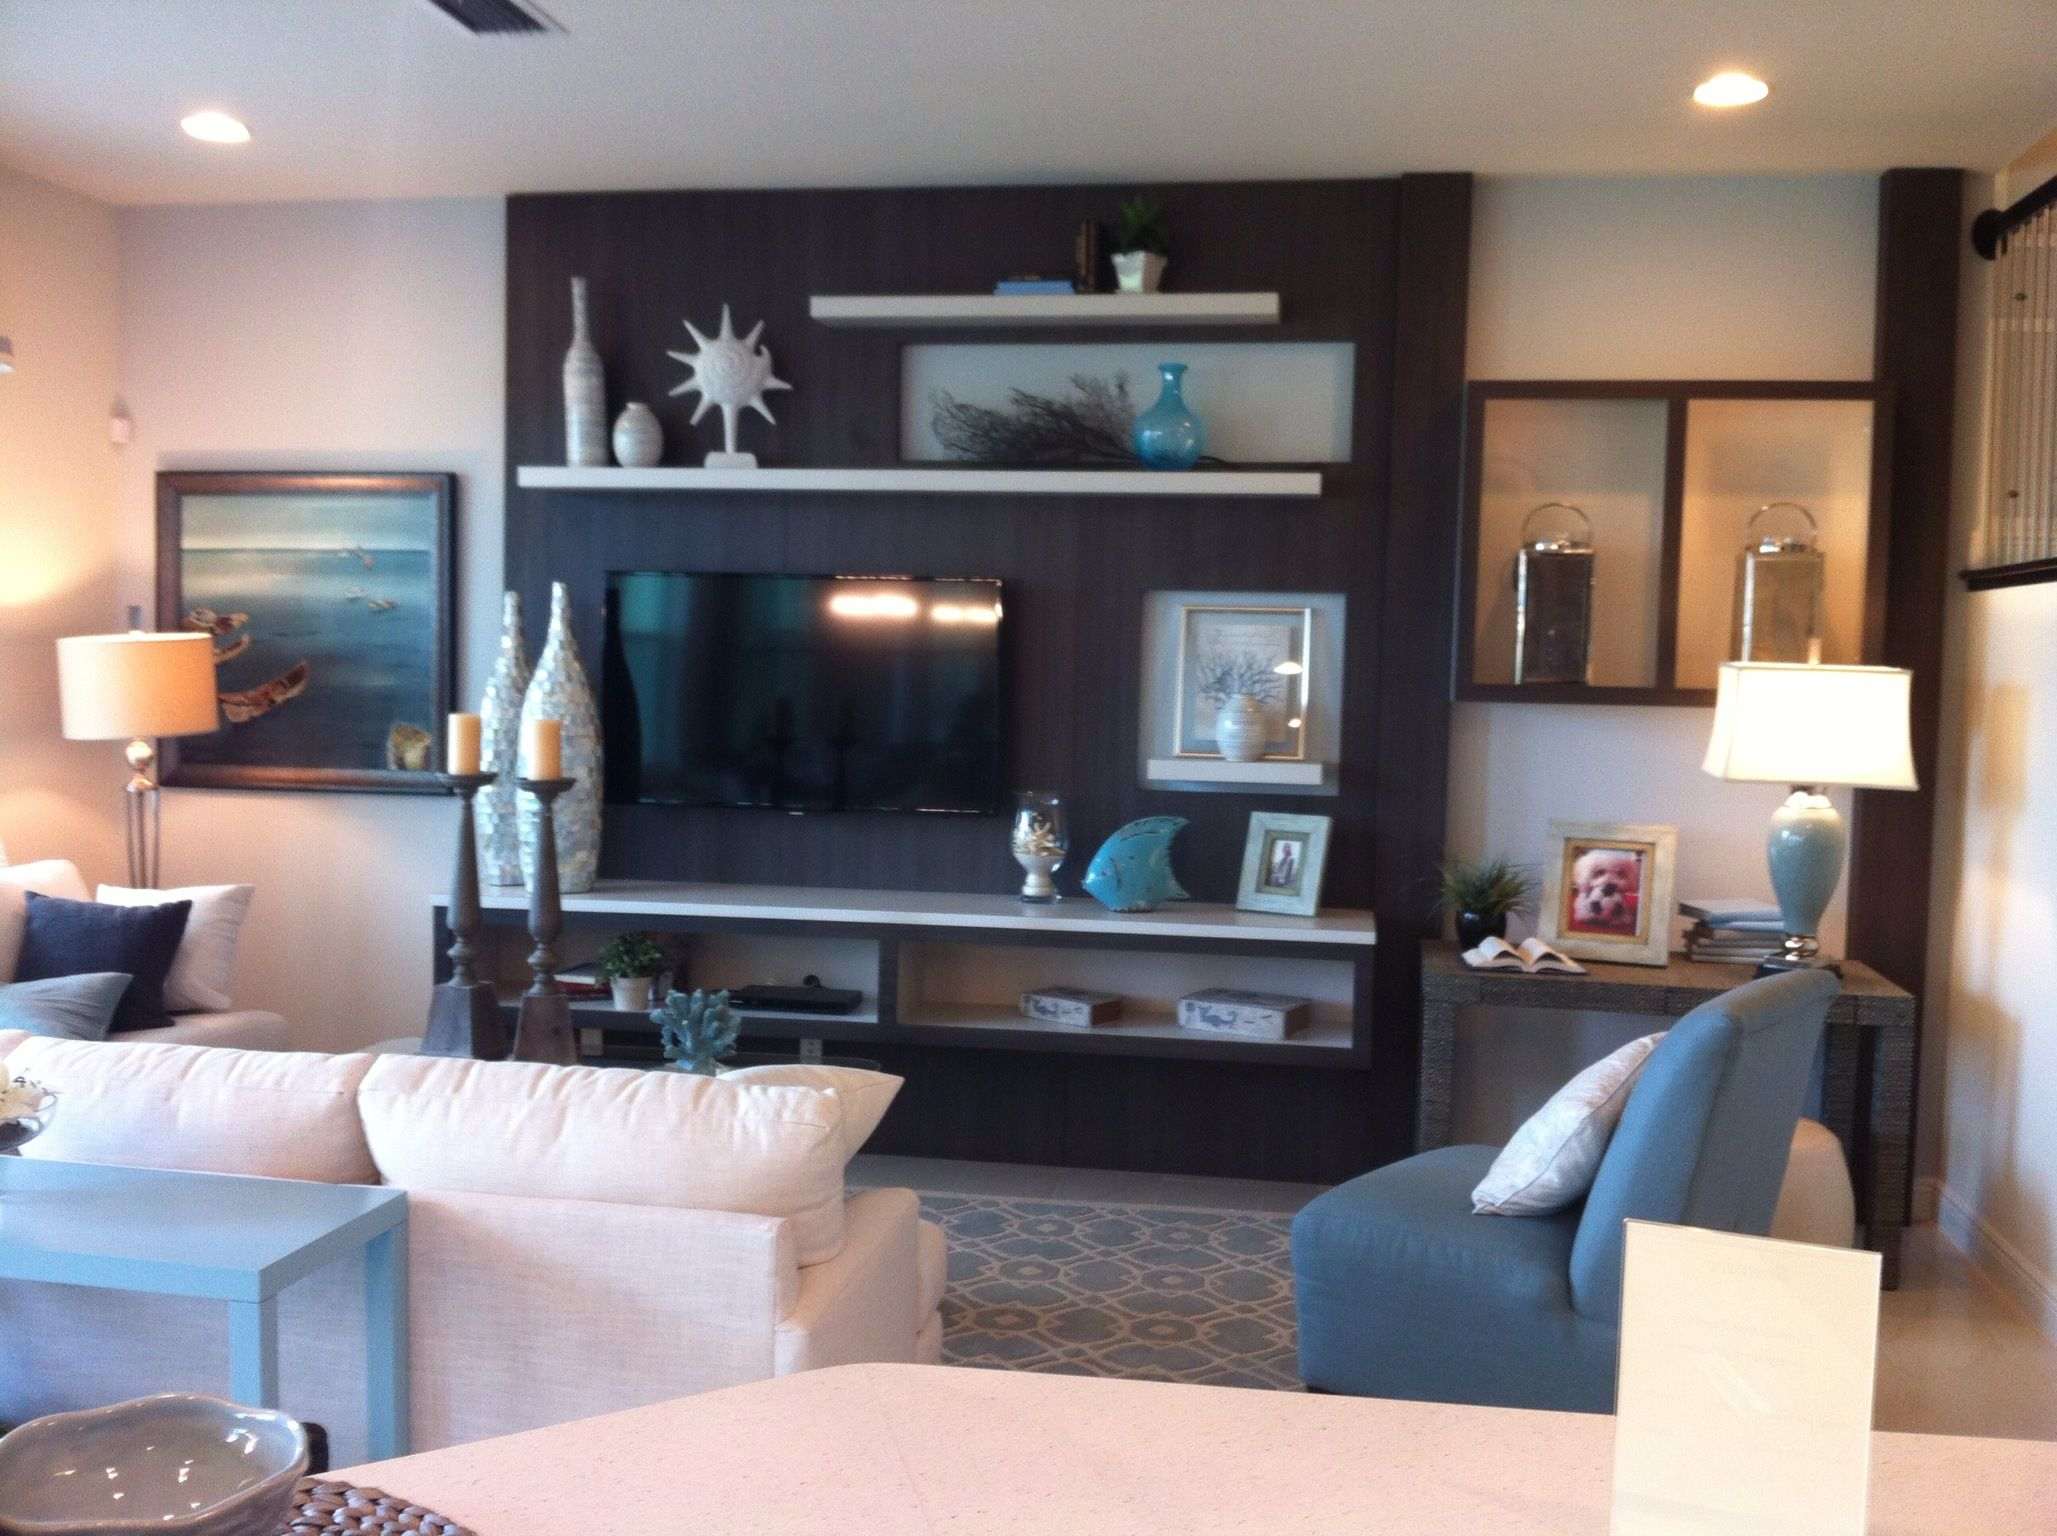 Add An Accent Color In A Large Area Behind The Tv But Maybe Not